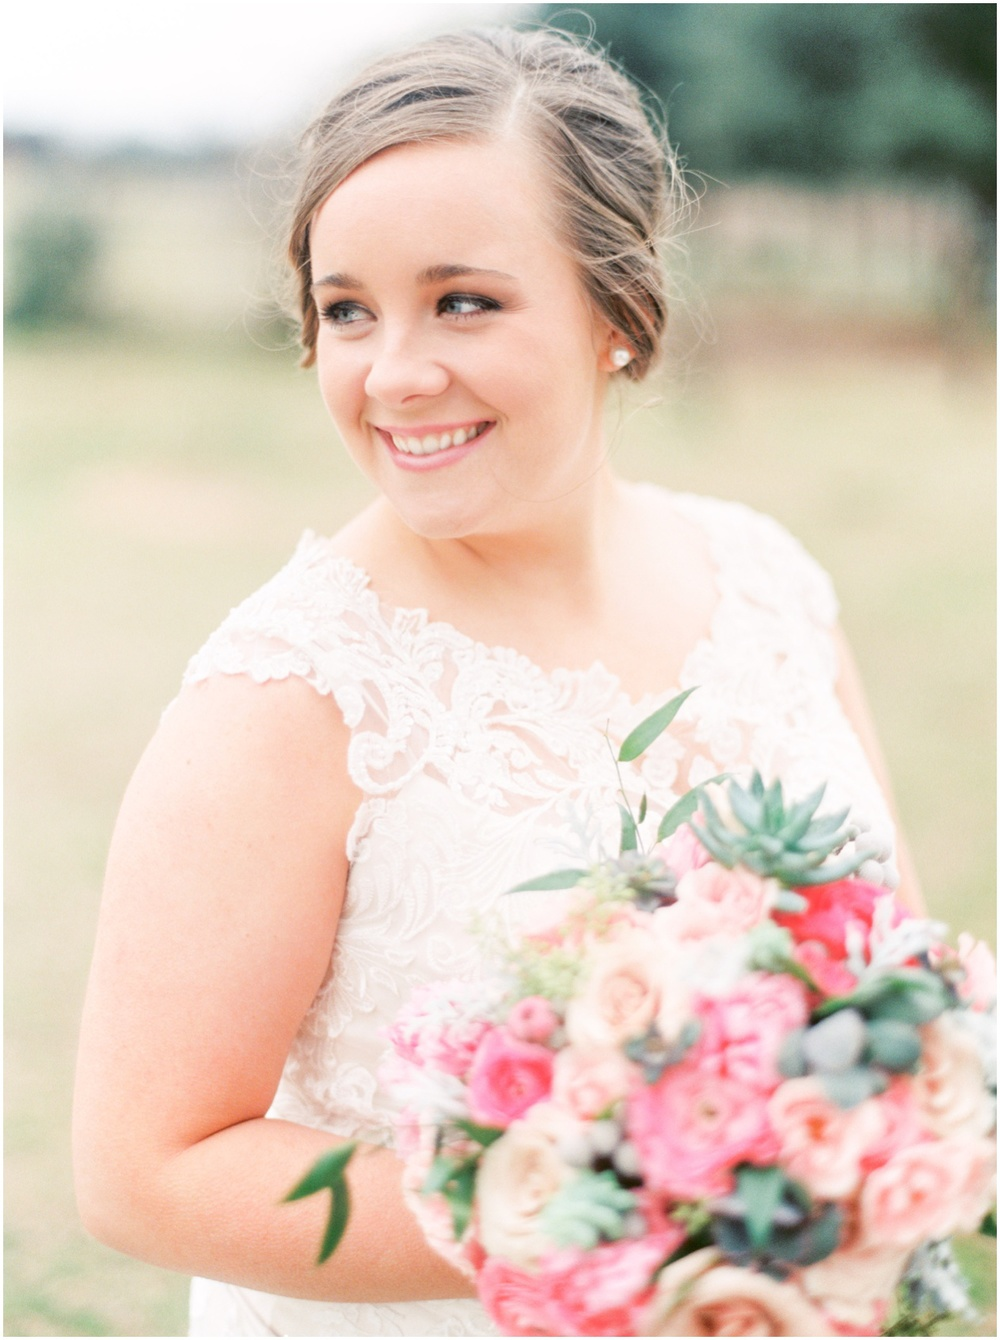 Sarah Best Photography - Claire's Bridals - The Amish Barn at Edge-23_STP.jpg